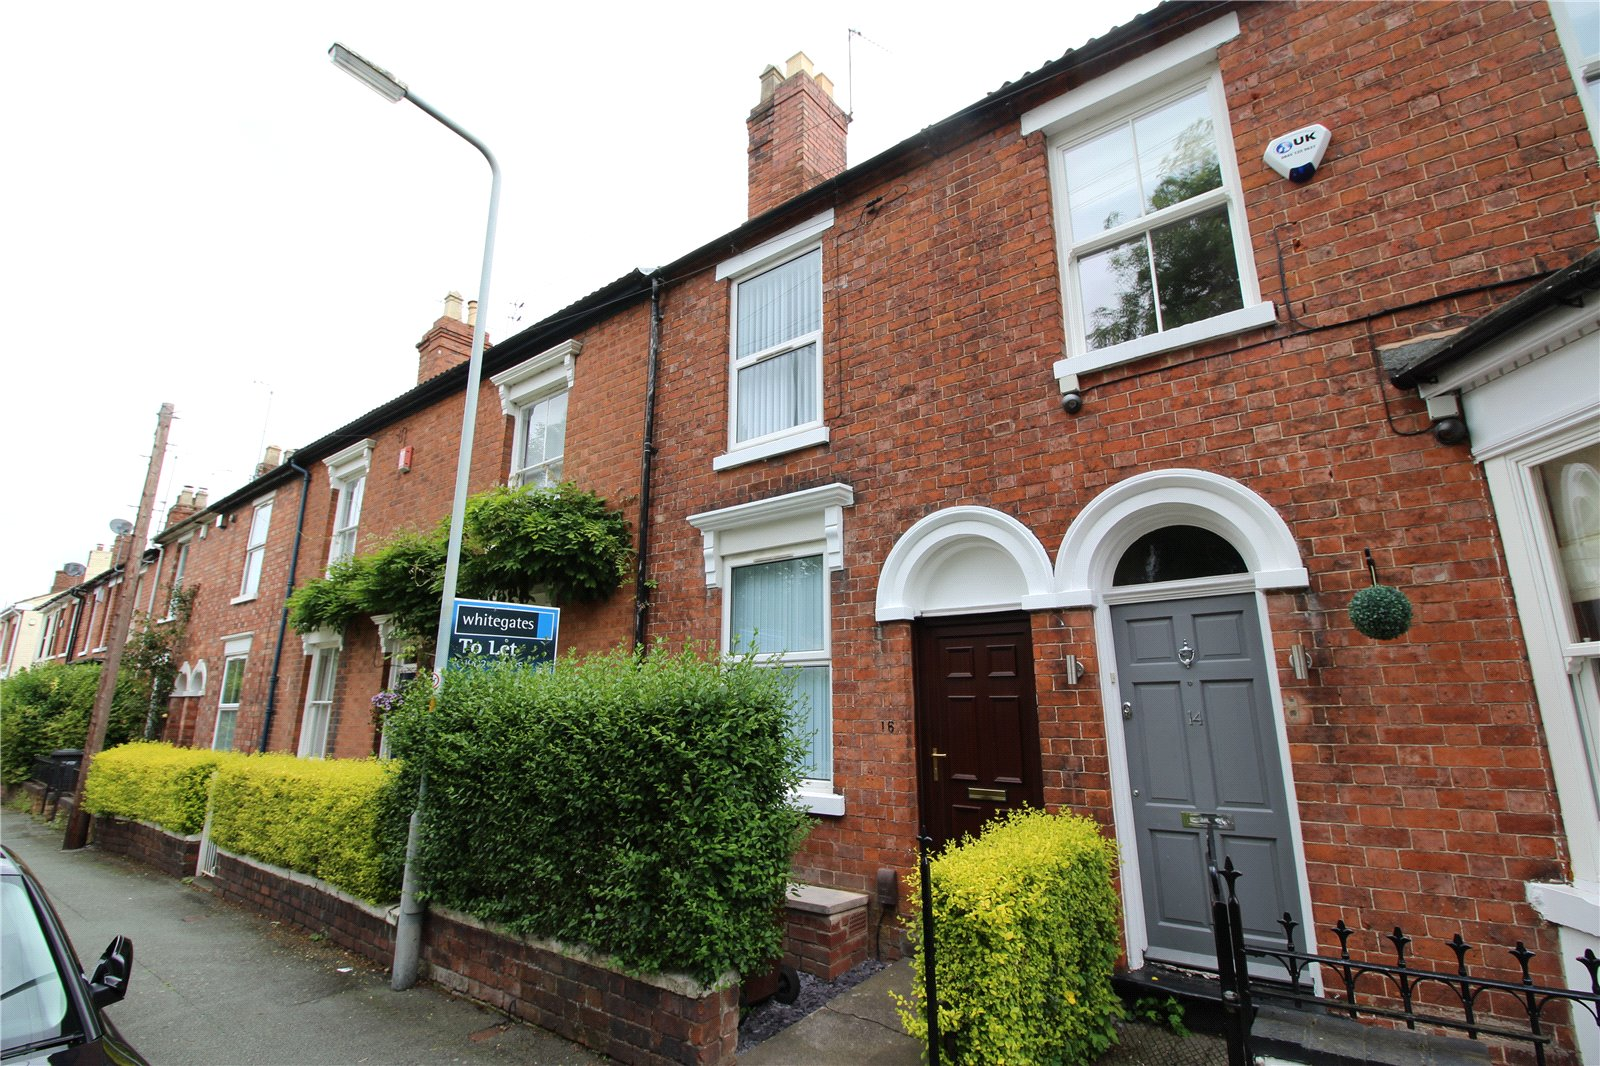 Whitegates Wolverhampton 3 Bedroom House To Rent In Rupert Street Wolverhampton West Midlands Wv3 Whitegates